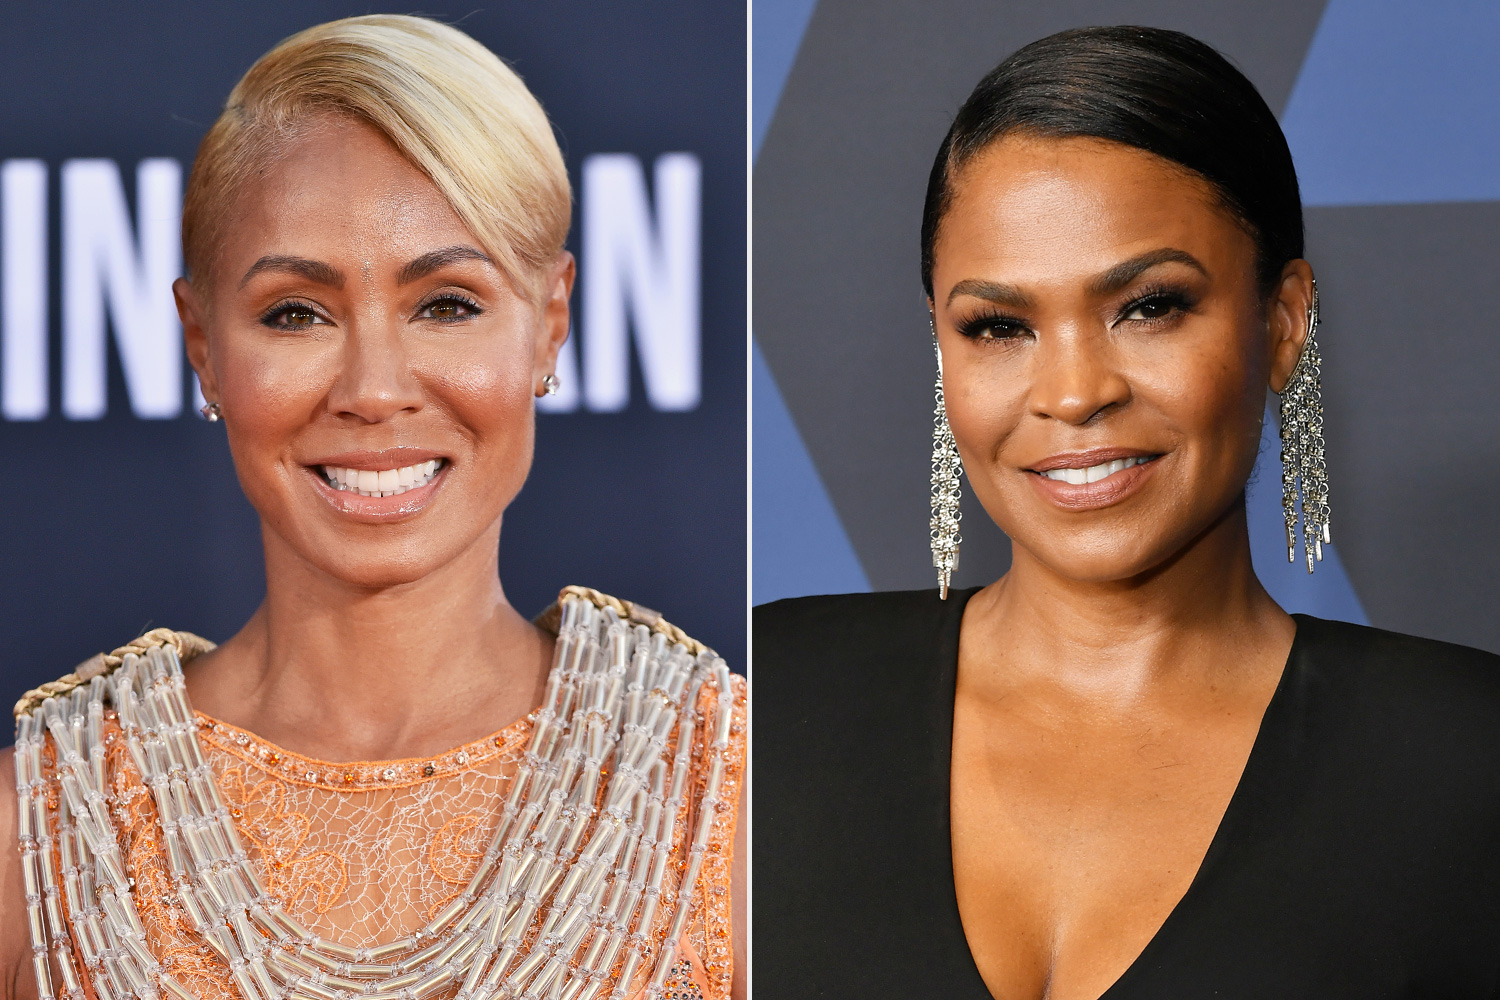 Jada Pinkett Smith and Nia Long both auditioned for Fresh Prince of Bel-Air